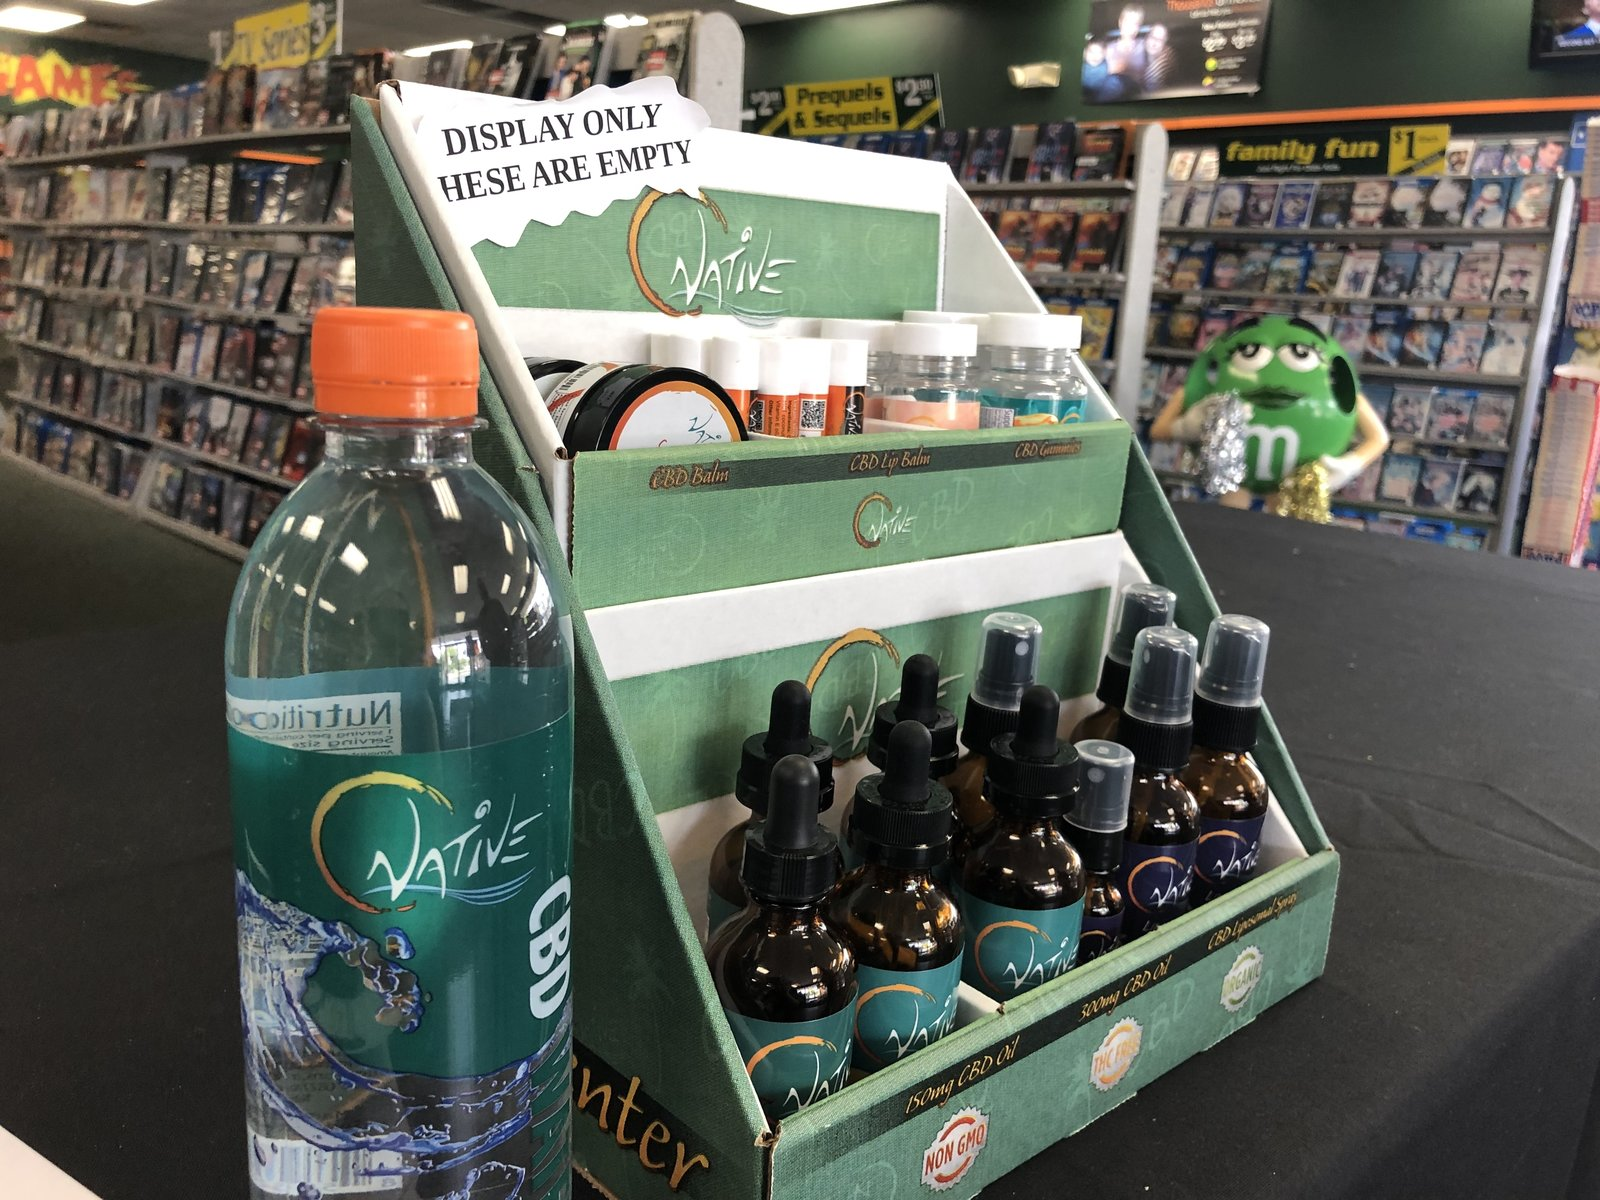 A display shows some of the CBD products for sale at Family Video.  Liam Niemeyer/Ohio Valley ReSource